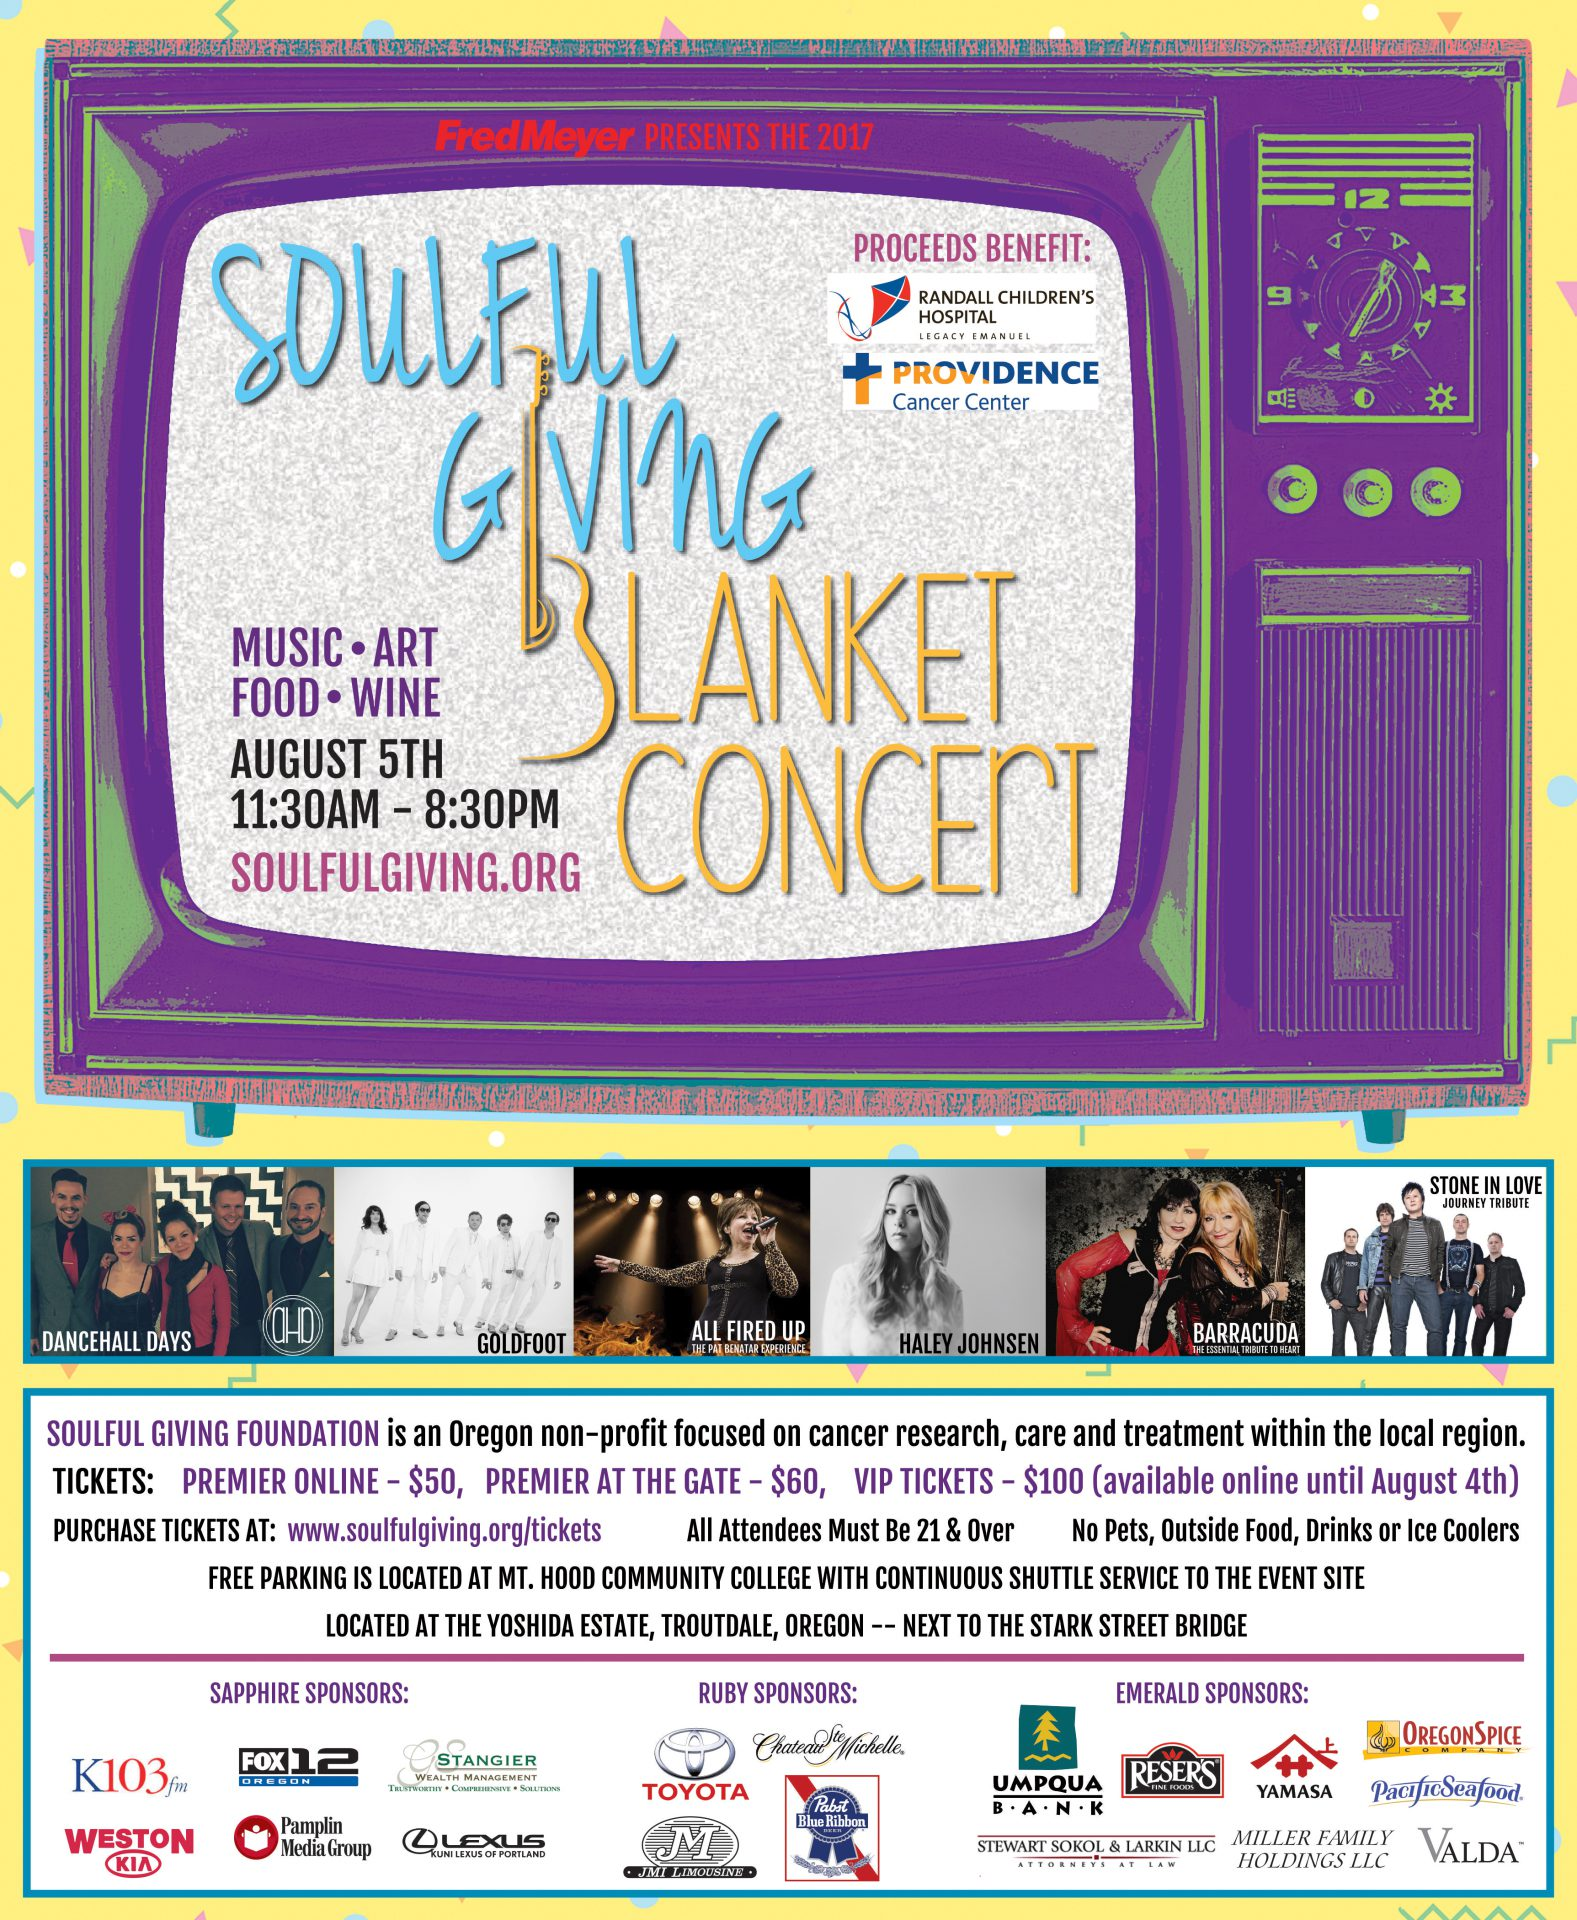 Soulful Giving Blanket Concert Poster 2017